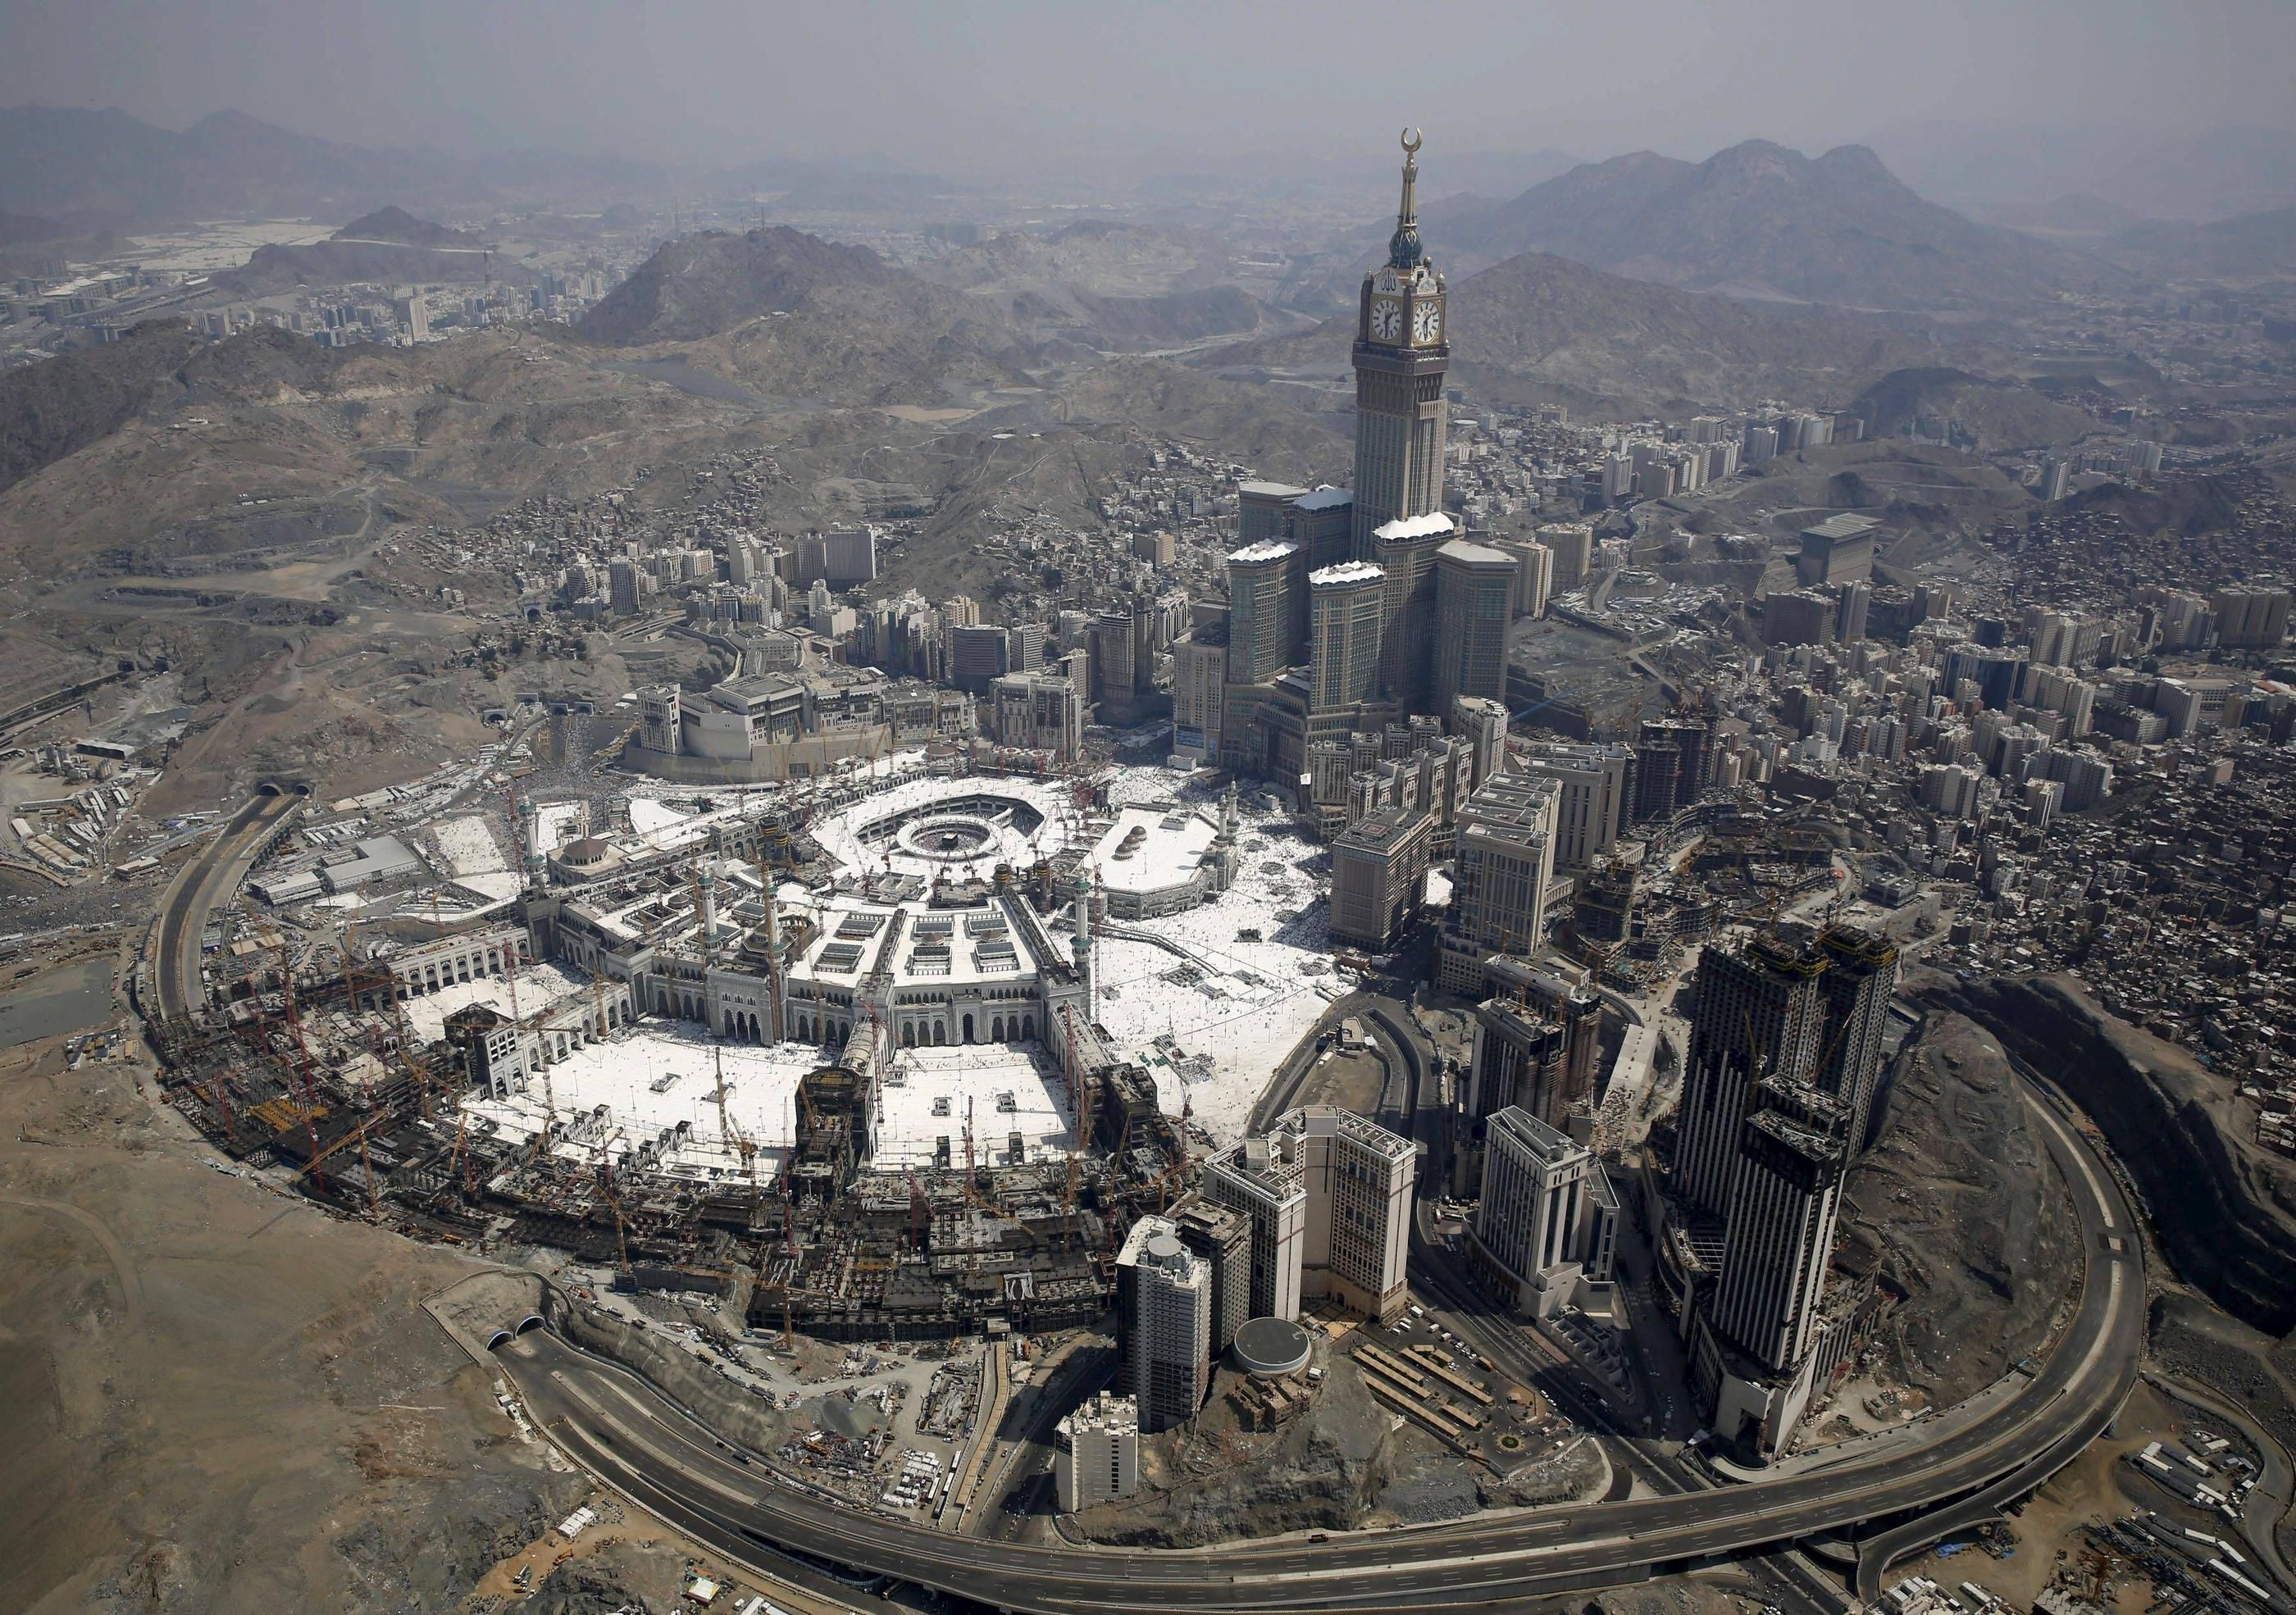 Masjid Al Haram Expansion Project 3500x2463 R Infrastructureporn Mecca Mosque Pictures Of The Week